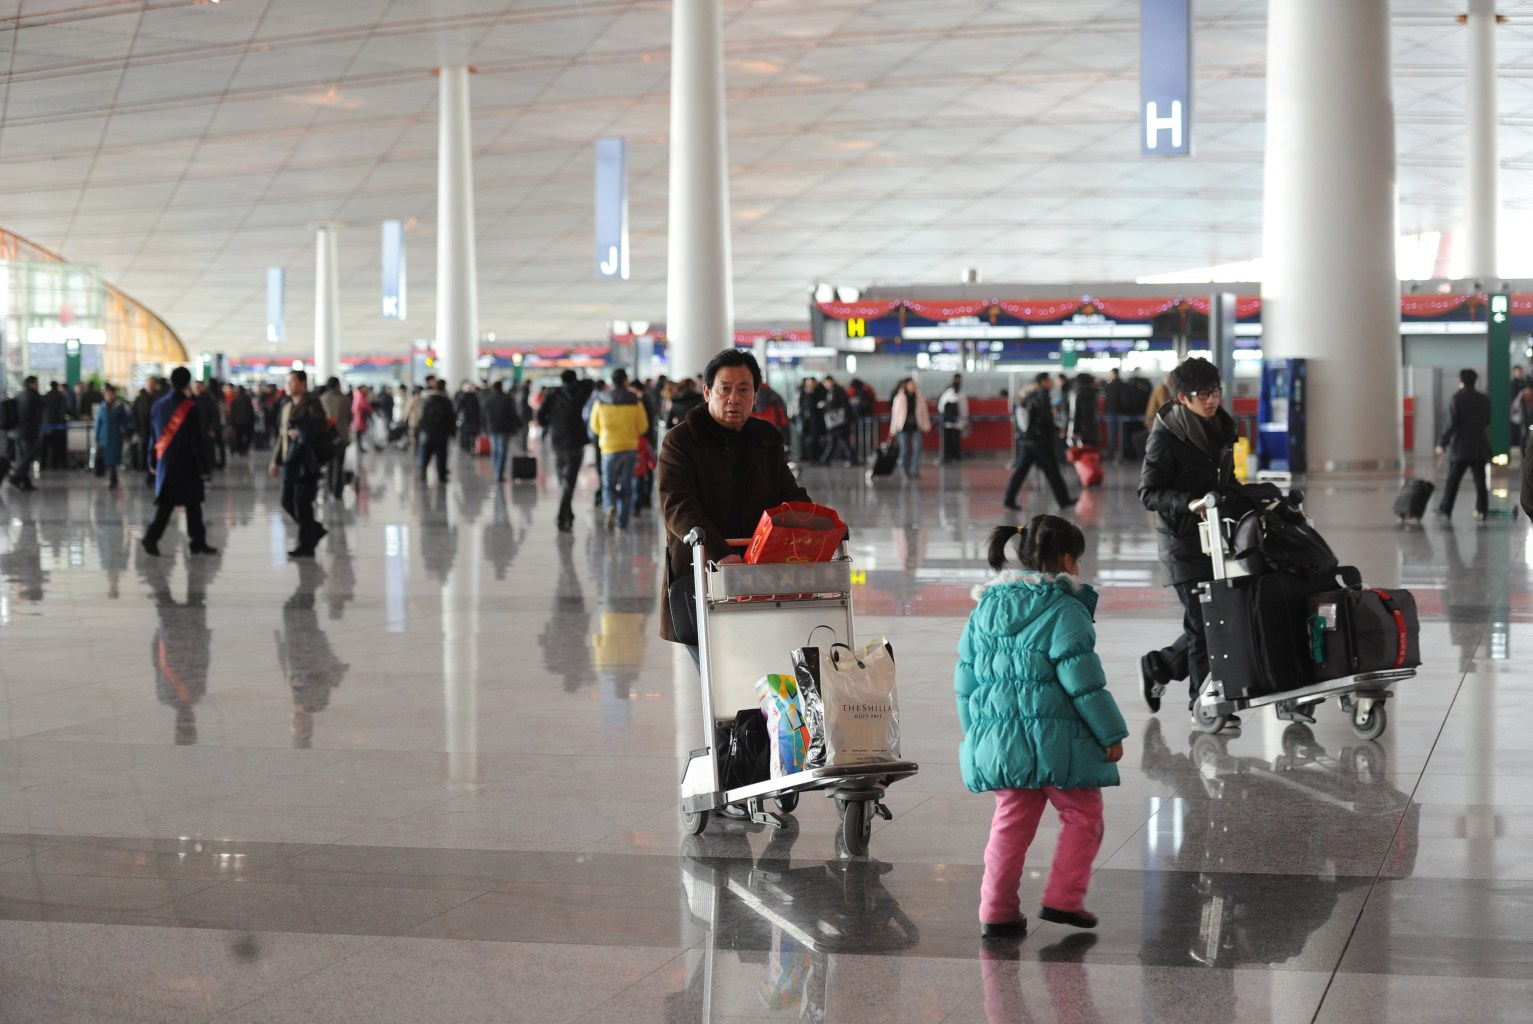 Beijing: With the opening of its third airport by 2015, Beijing is expected to surpass  London as the world's busiest air hub. Beijing Capital International Airport's  Terminal 3 is already larger than all five terminals at London's Heathrow  combined. Above, passengers walk through a terminal at Beijing's Capital airport in January 2011.